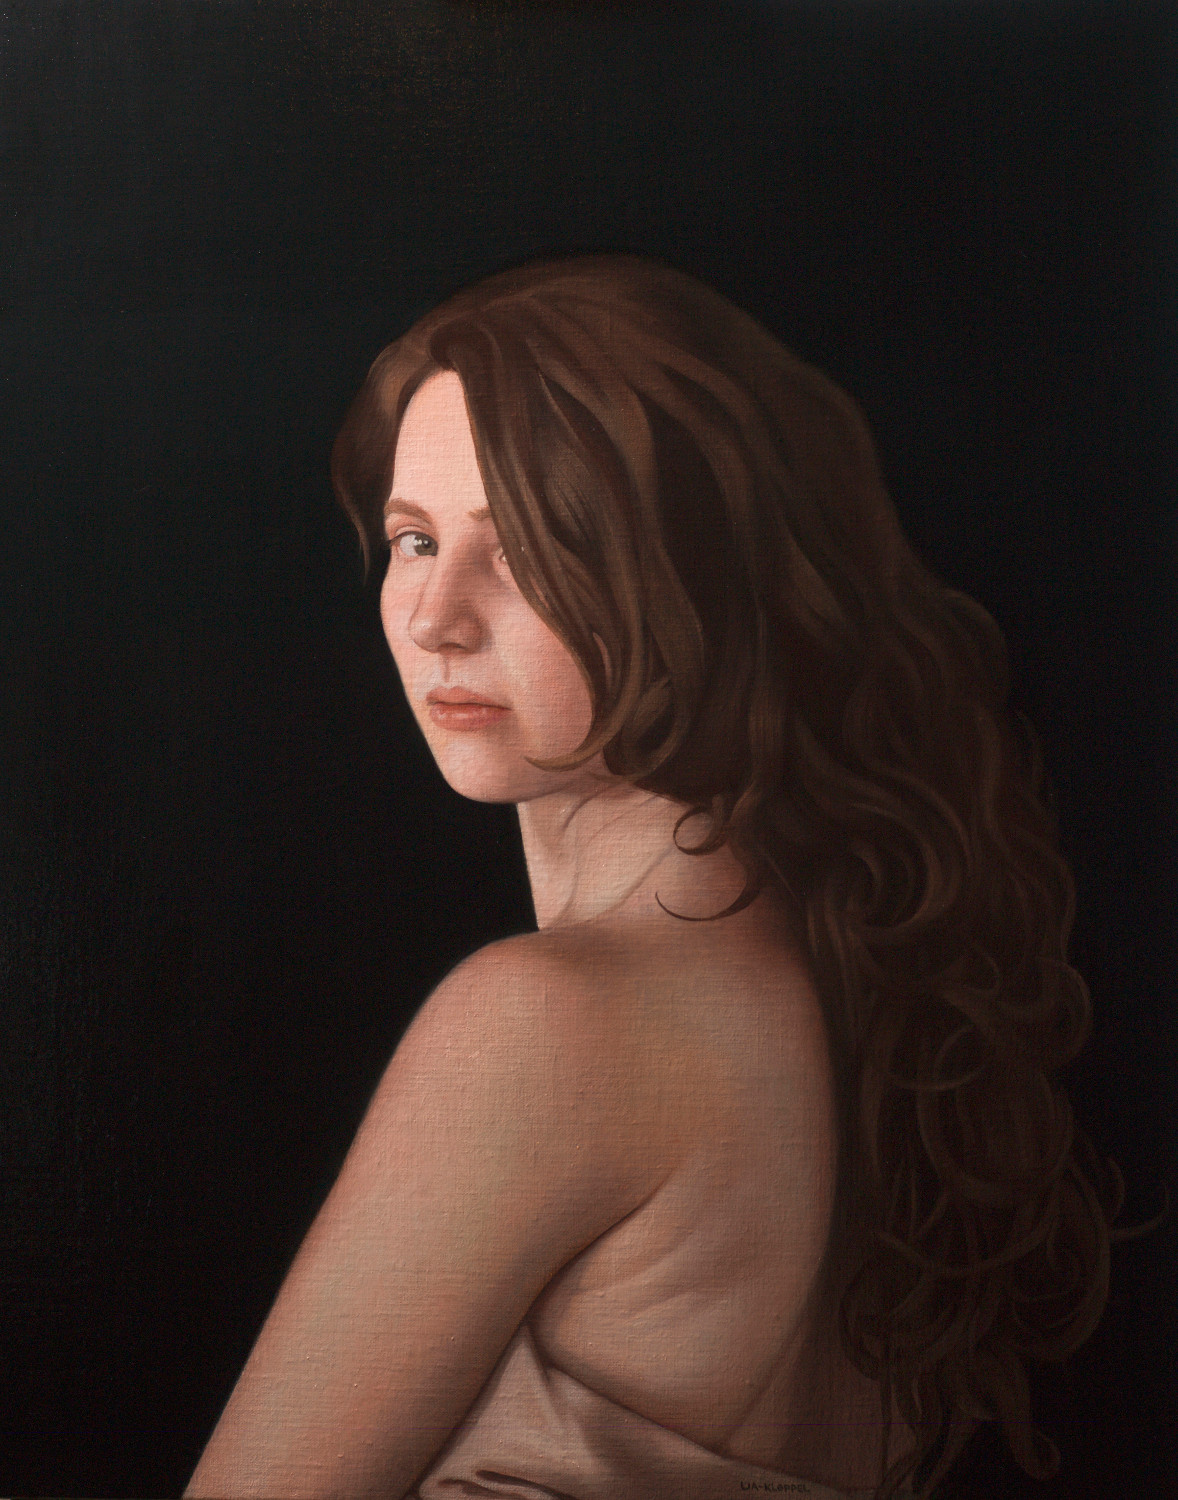 Susanna , 2015, Oil on linen, 24 x 20 inches